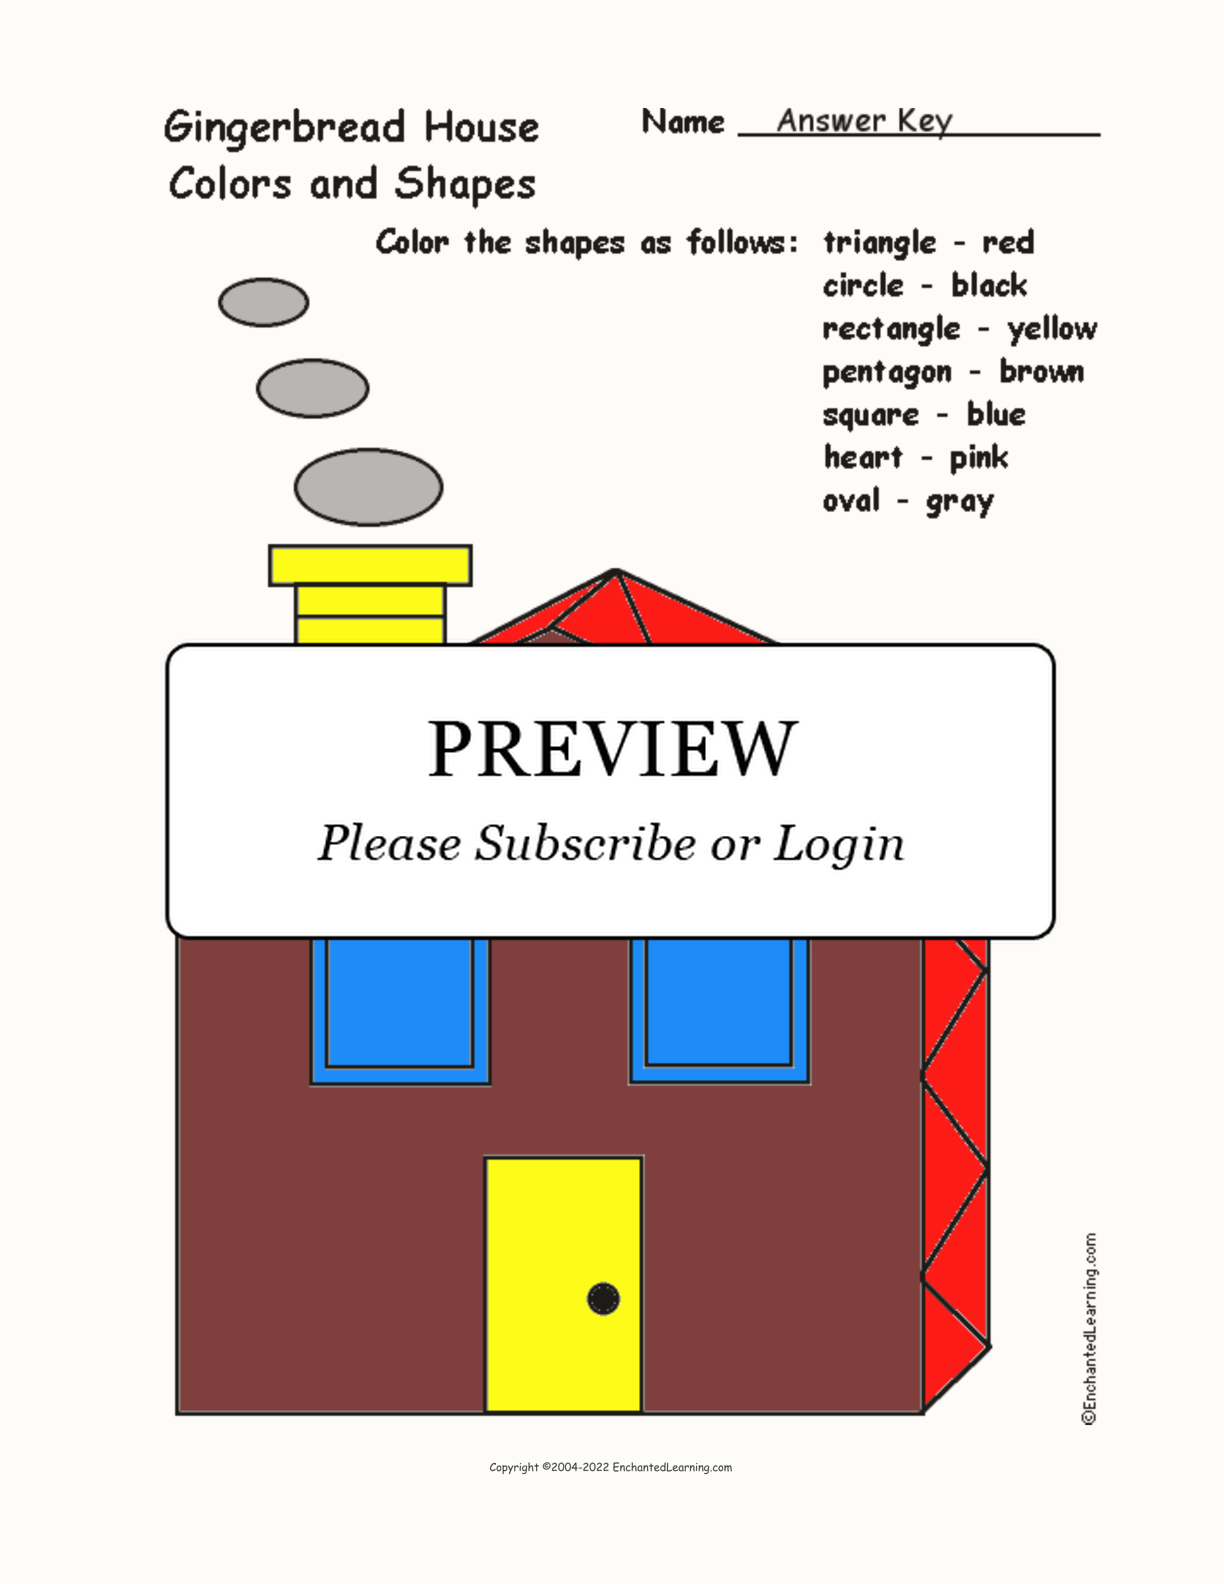 Gingerbread House: Colors and Shapes interactive worksheet page 2